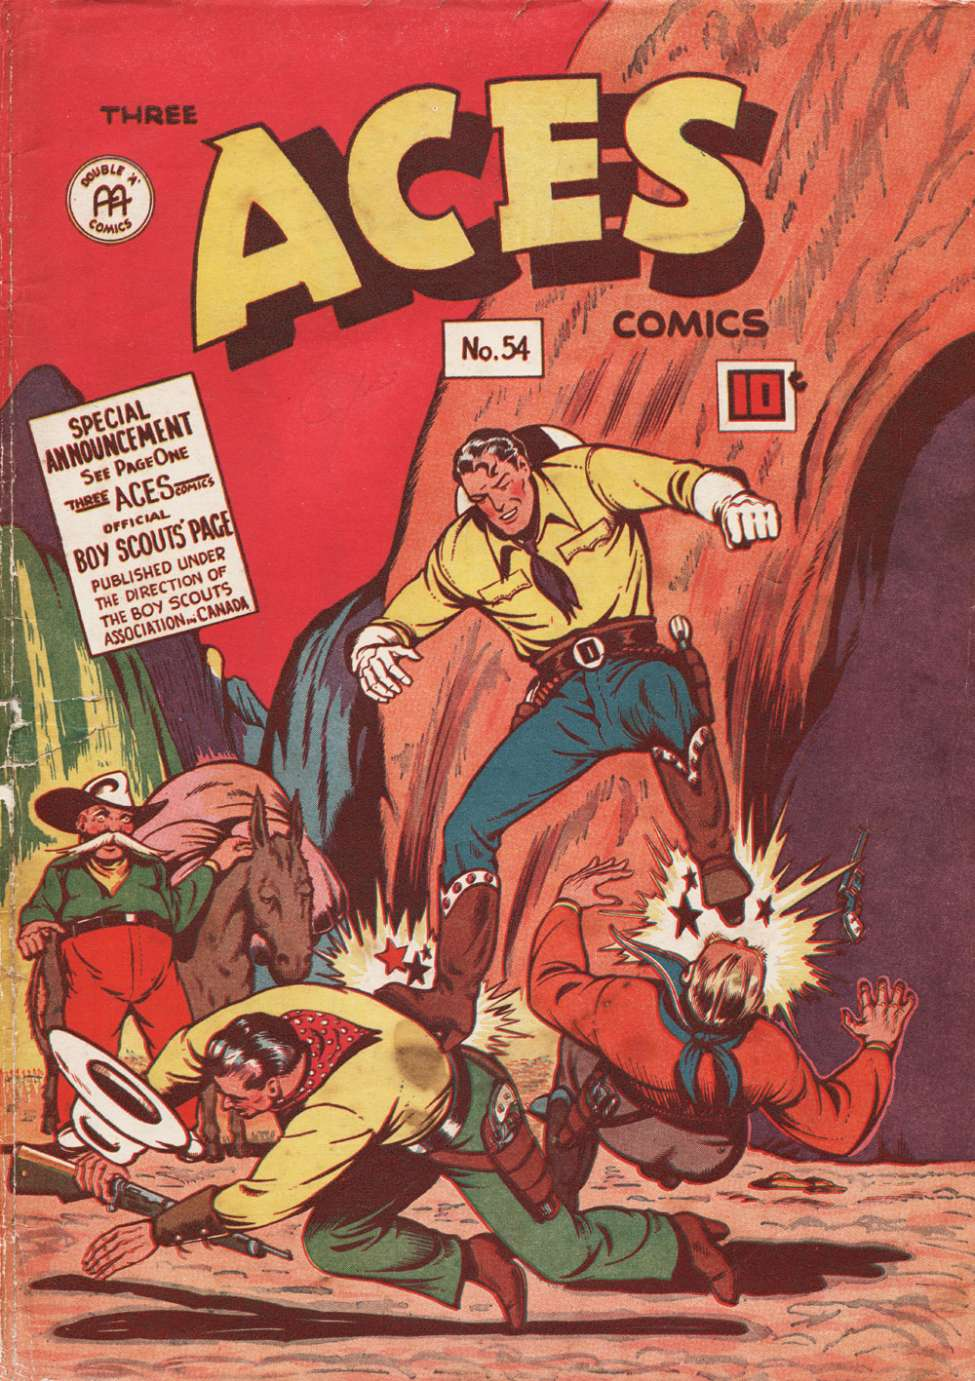 Comic Book Cover For Three Aces Comics #54